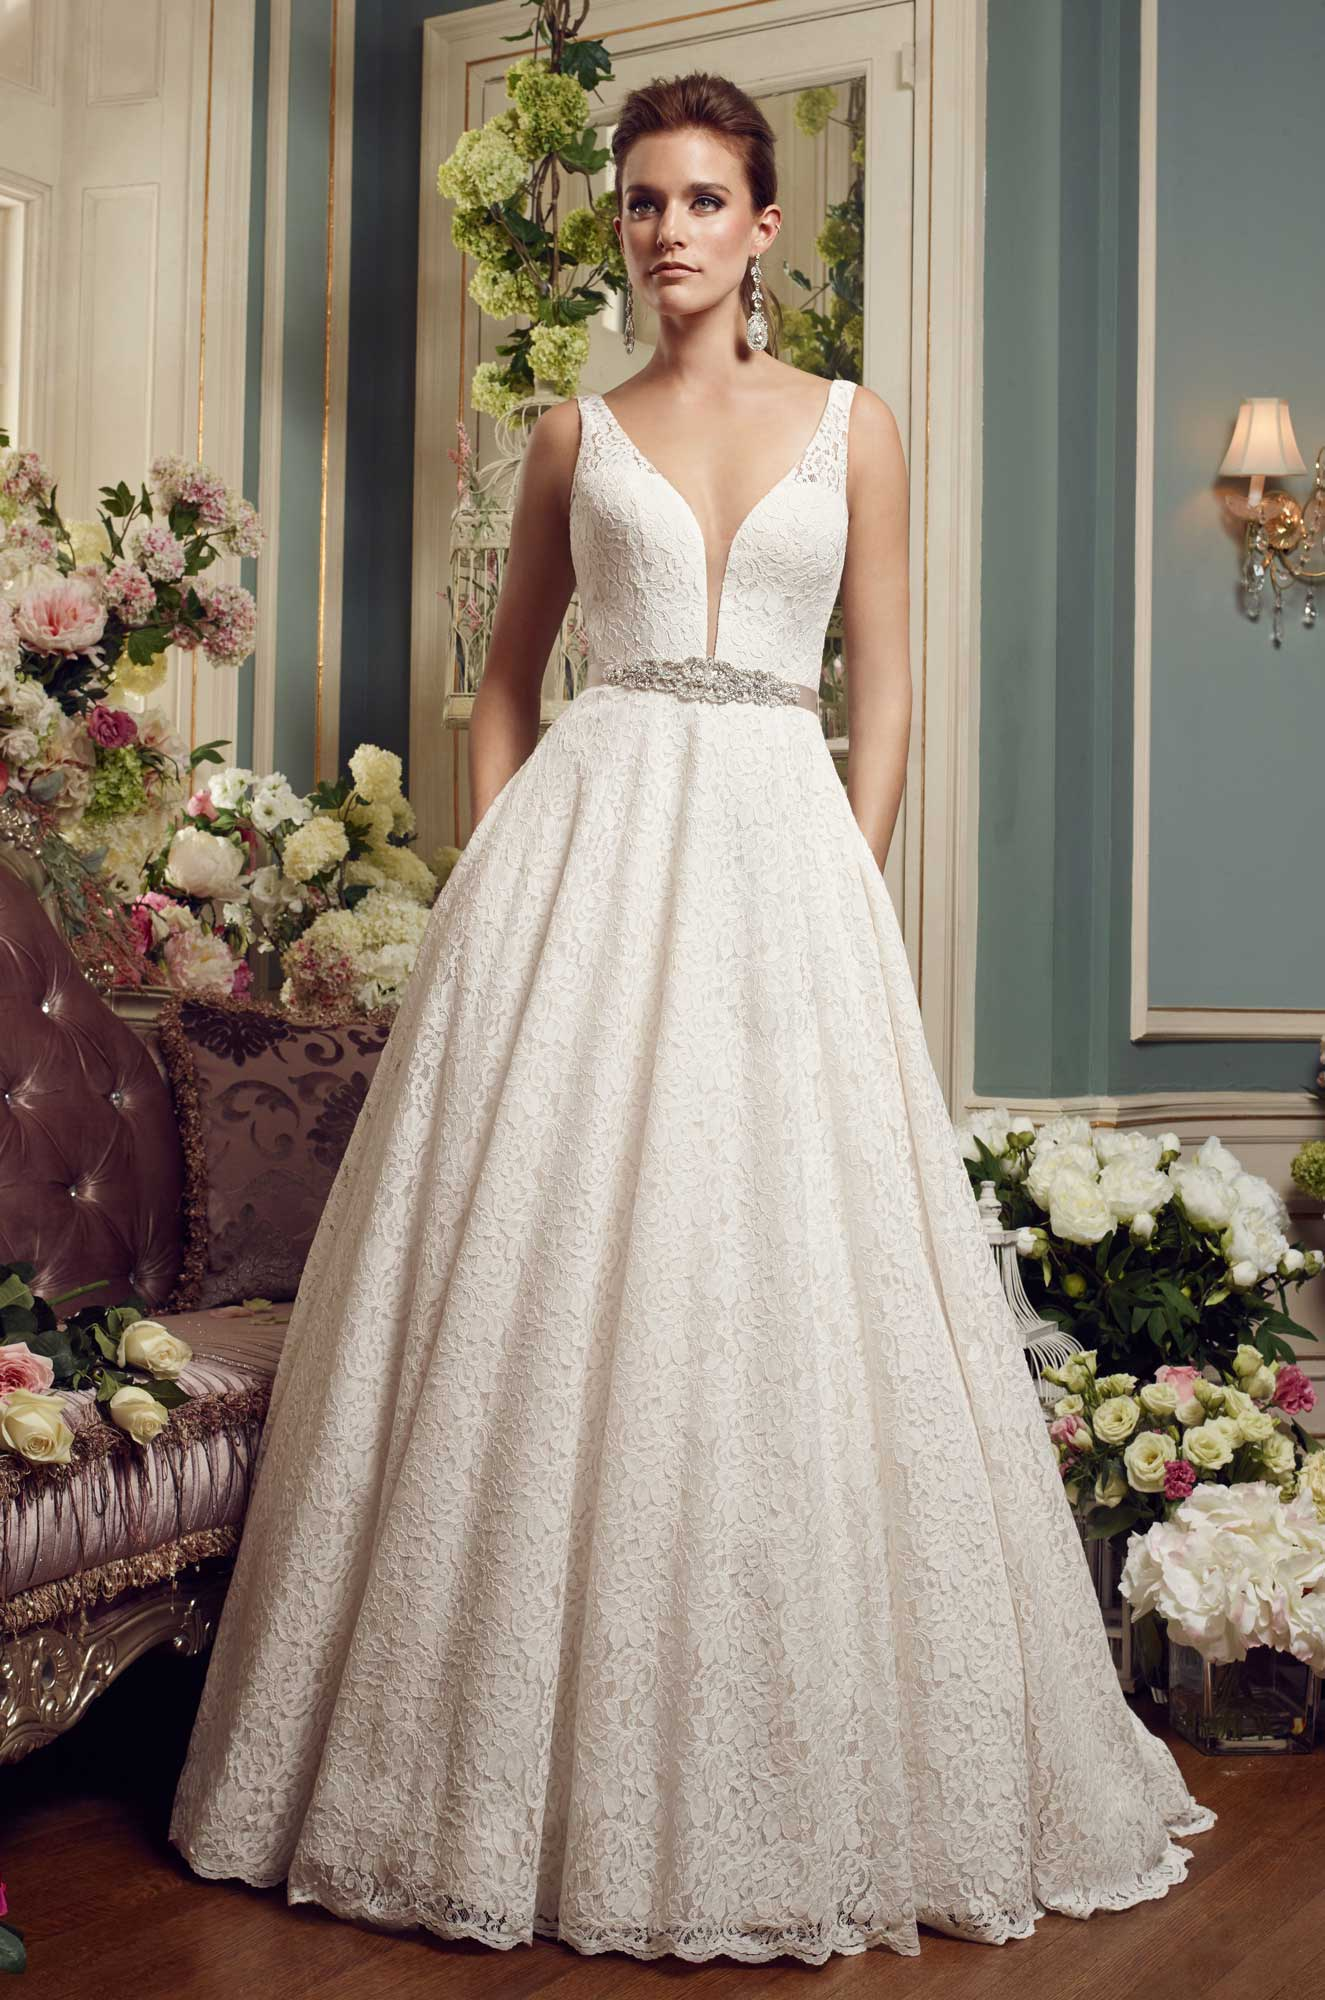 Lace ball gown wedding dress style 2167 mikaella bridal for Lace wedding dress ball gown